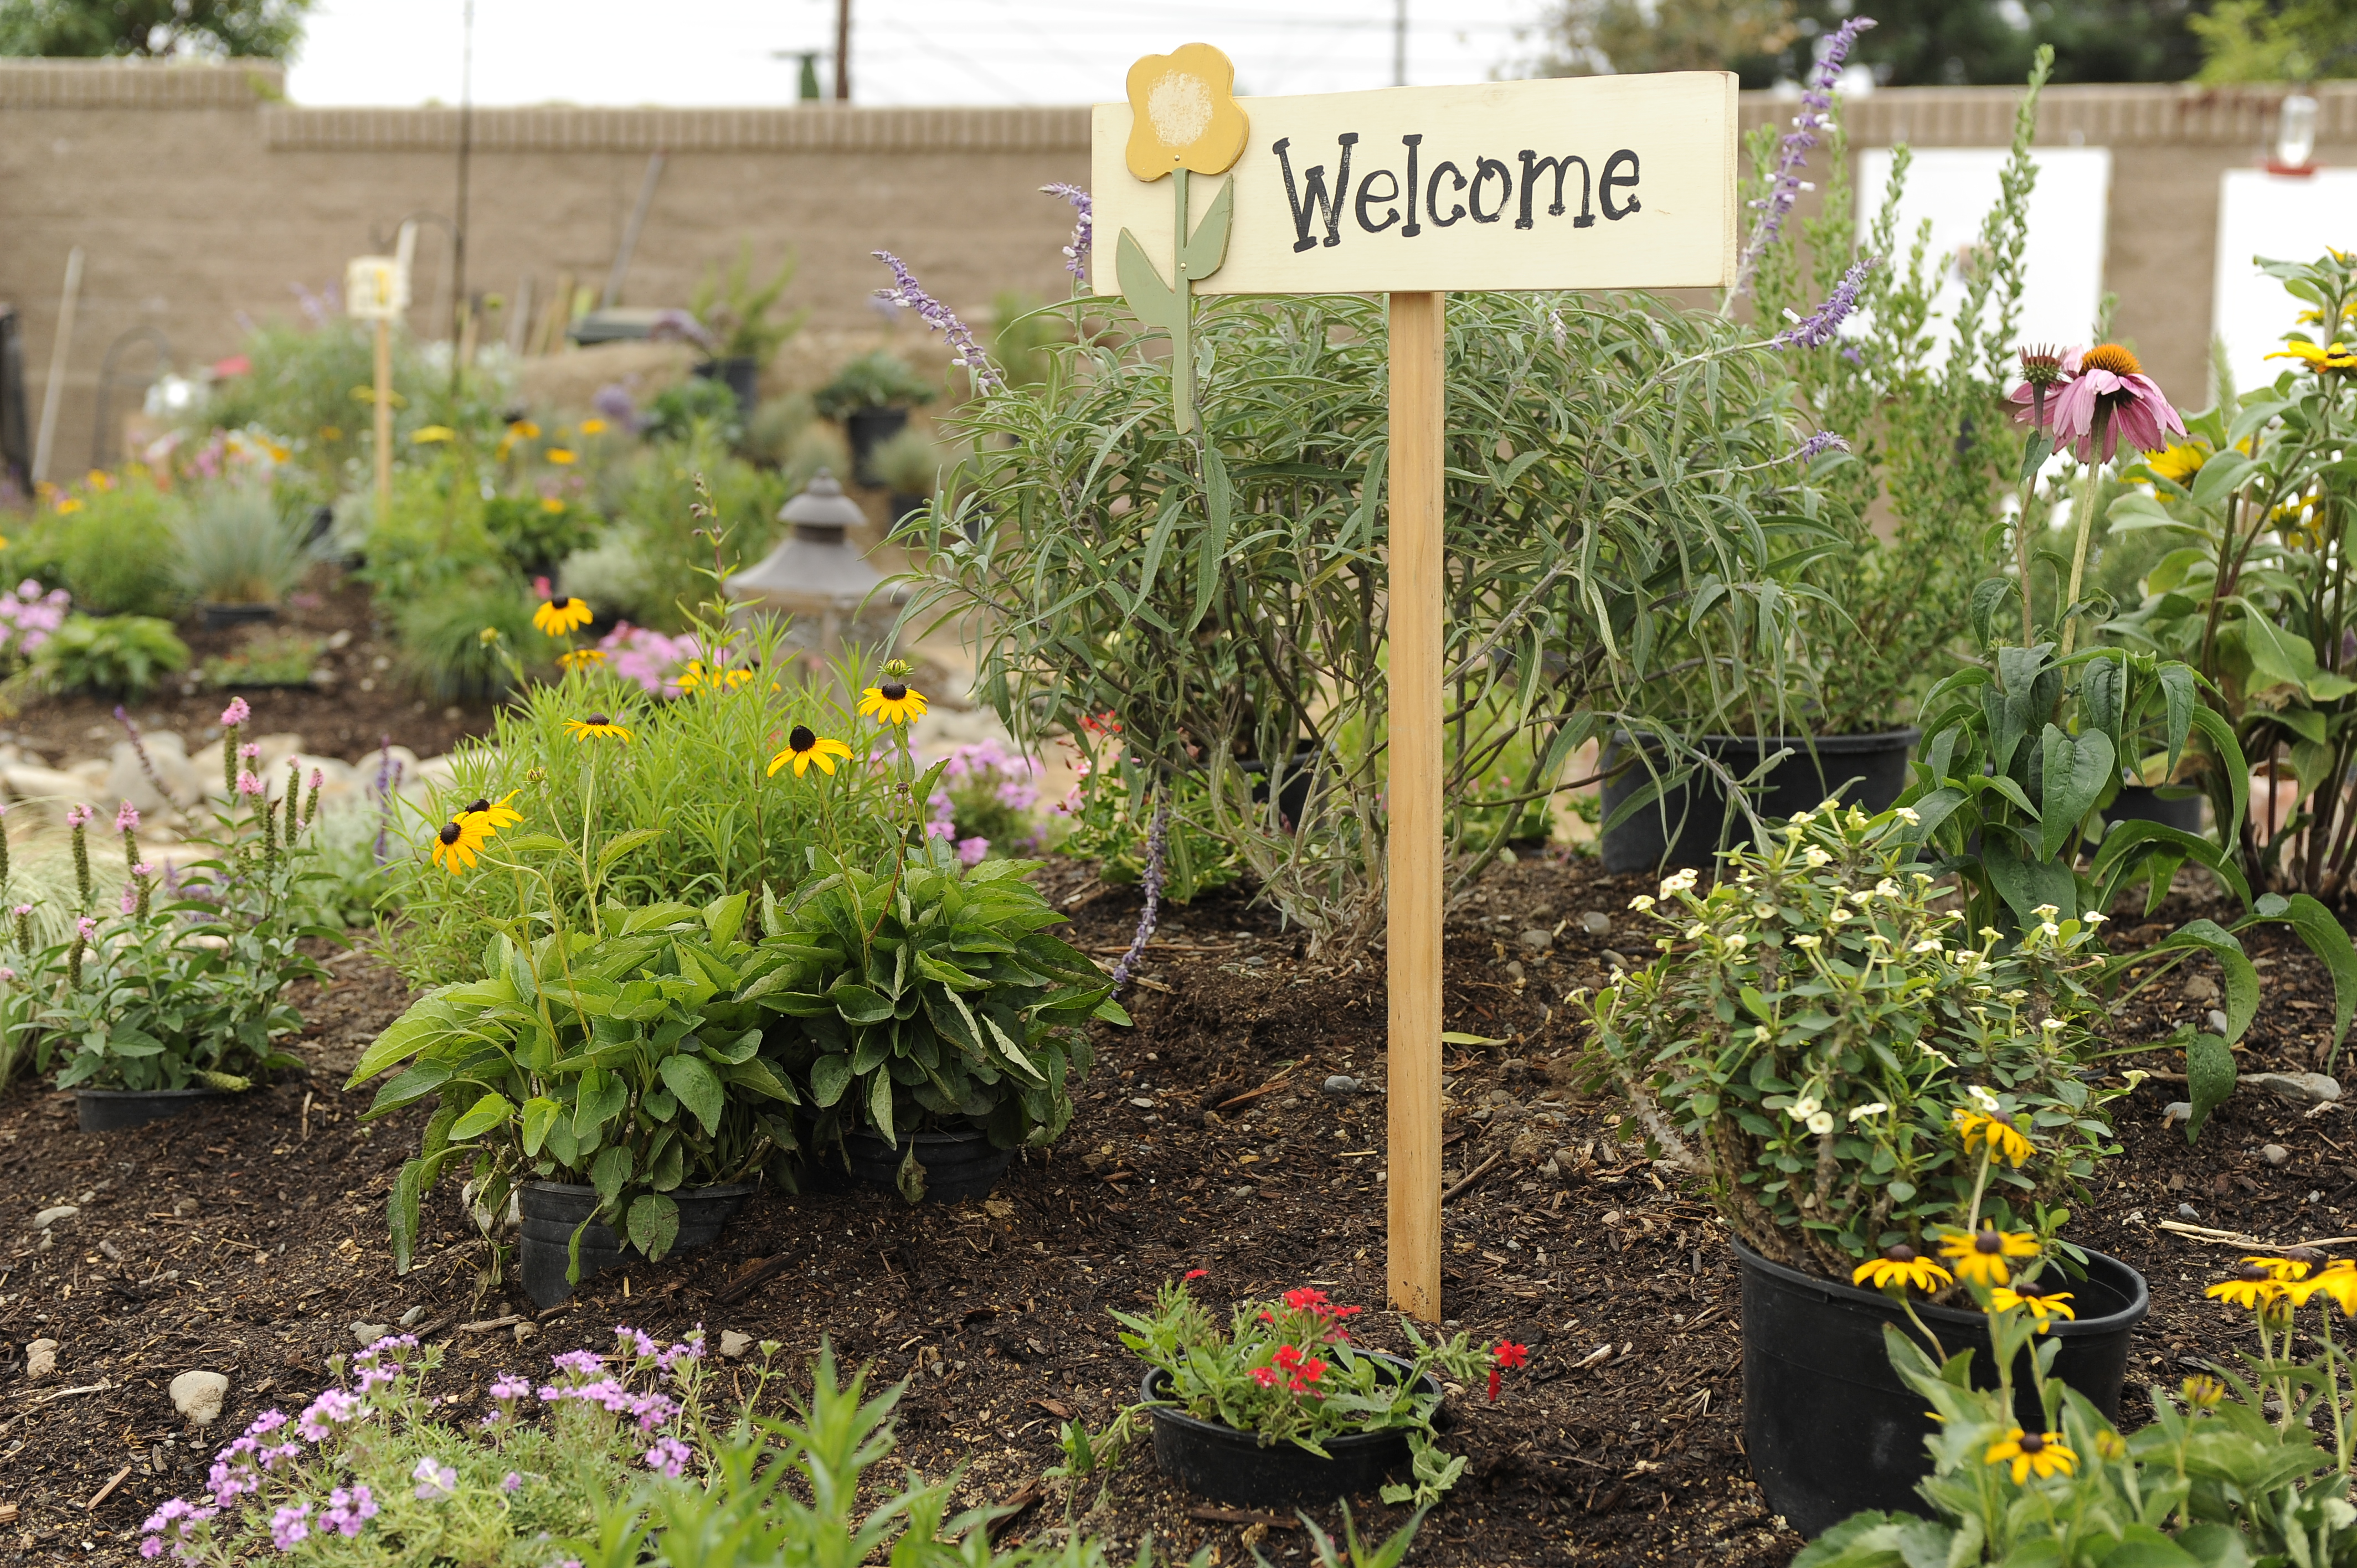 Garden welcome sign in a flower garden